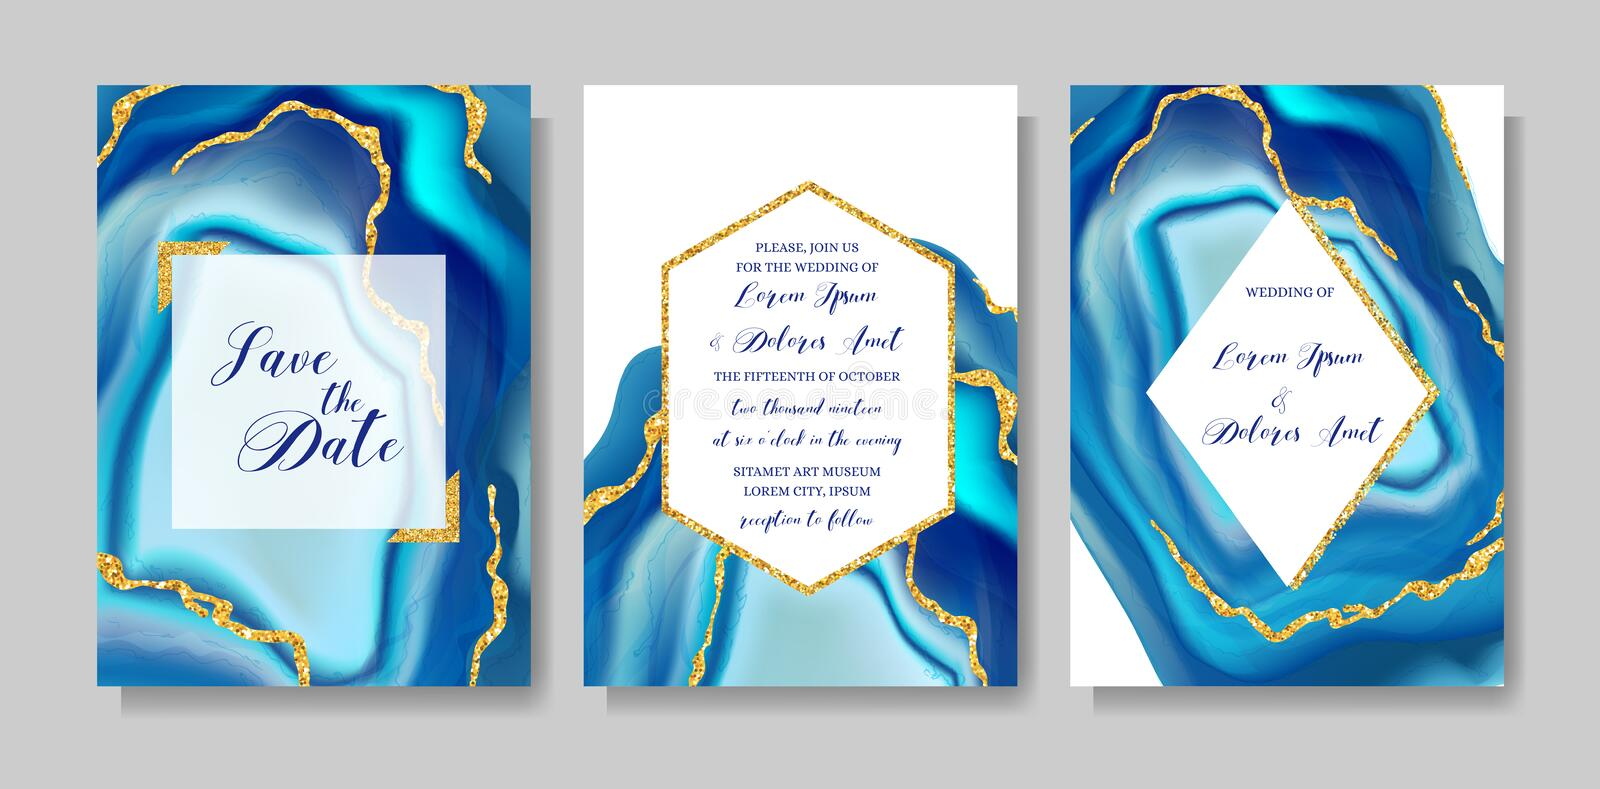 Wedding fashion geode or marble template, artistic covers design, colorful texture realistic backgrounds. Trendy pattern royalty free illustration